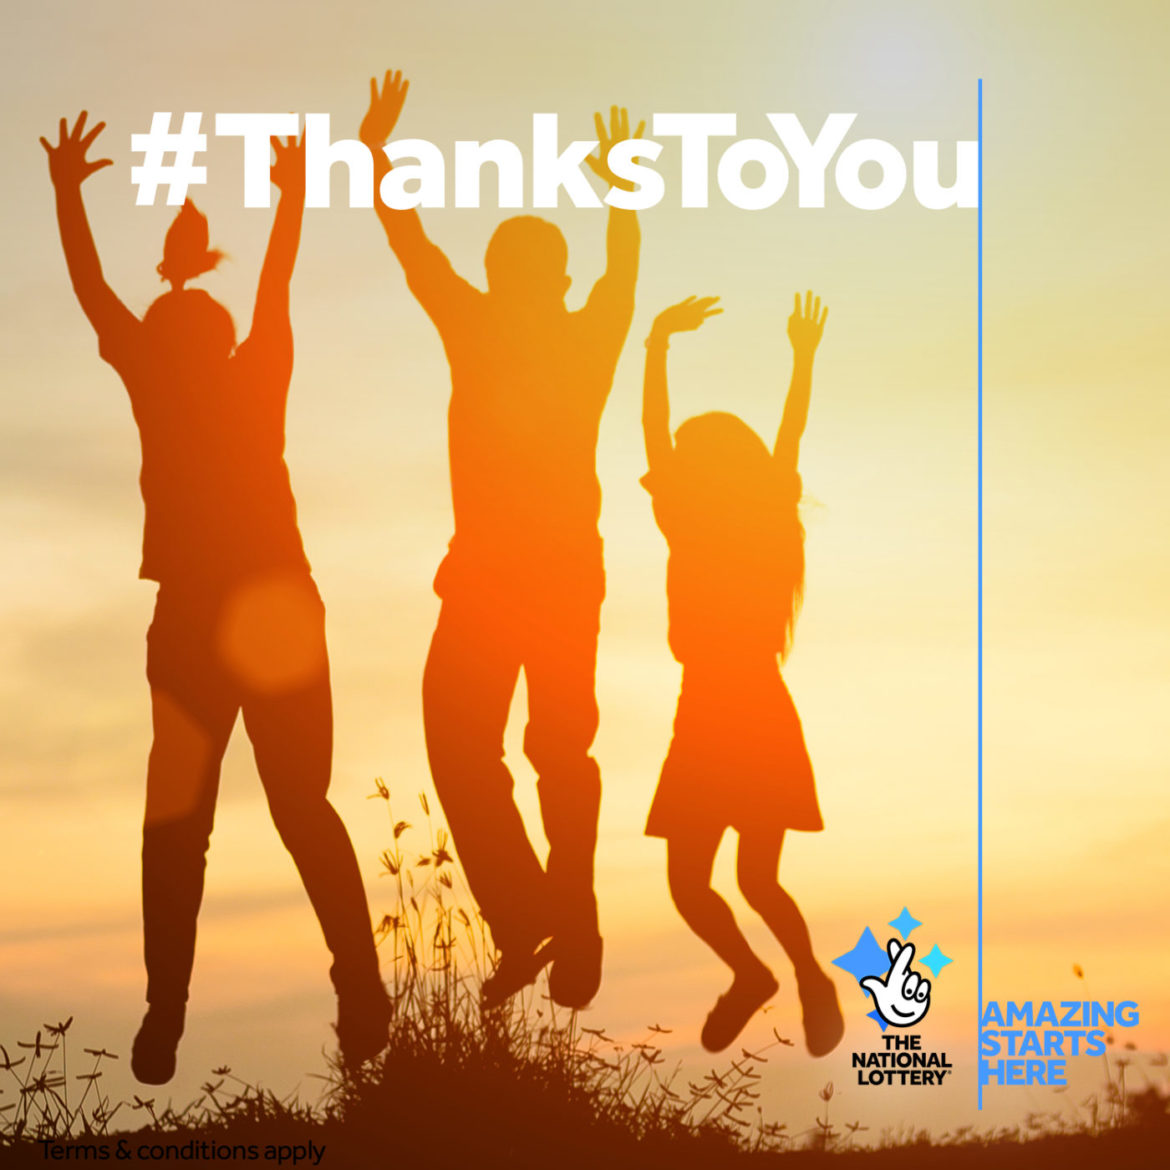 St Peter's #ThanksToYou Campaign - Heritage Lottery Fund